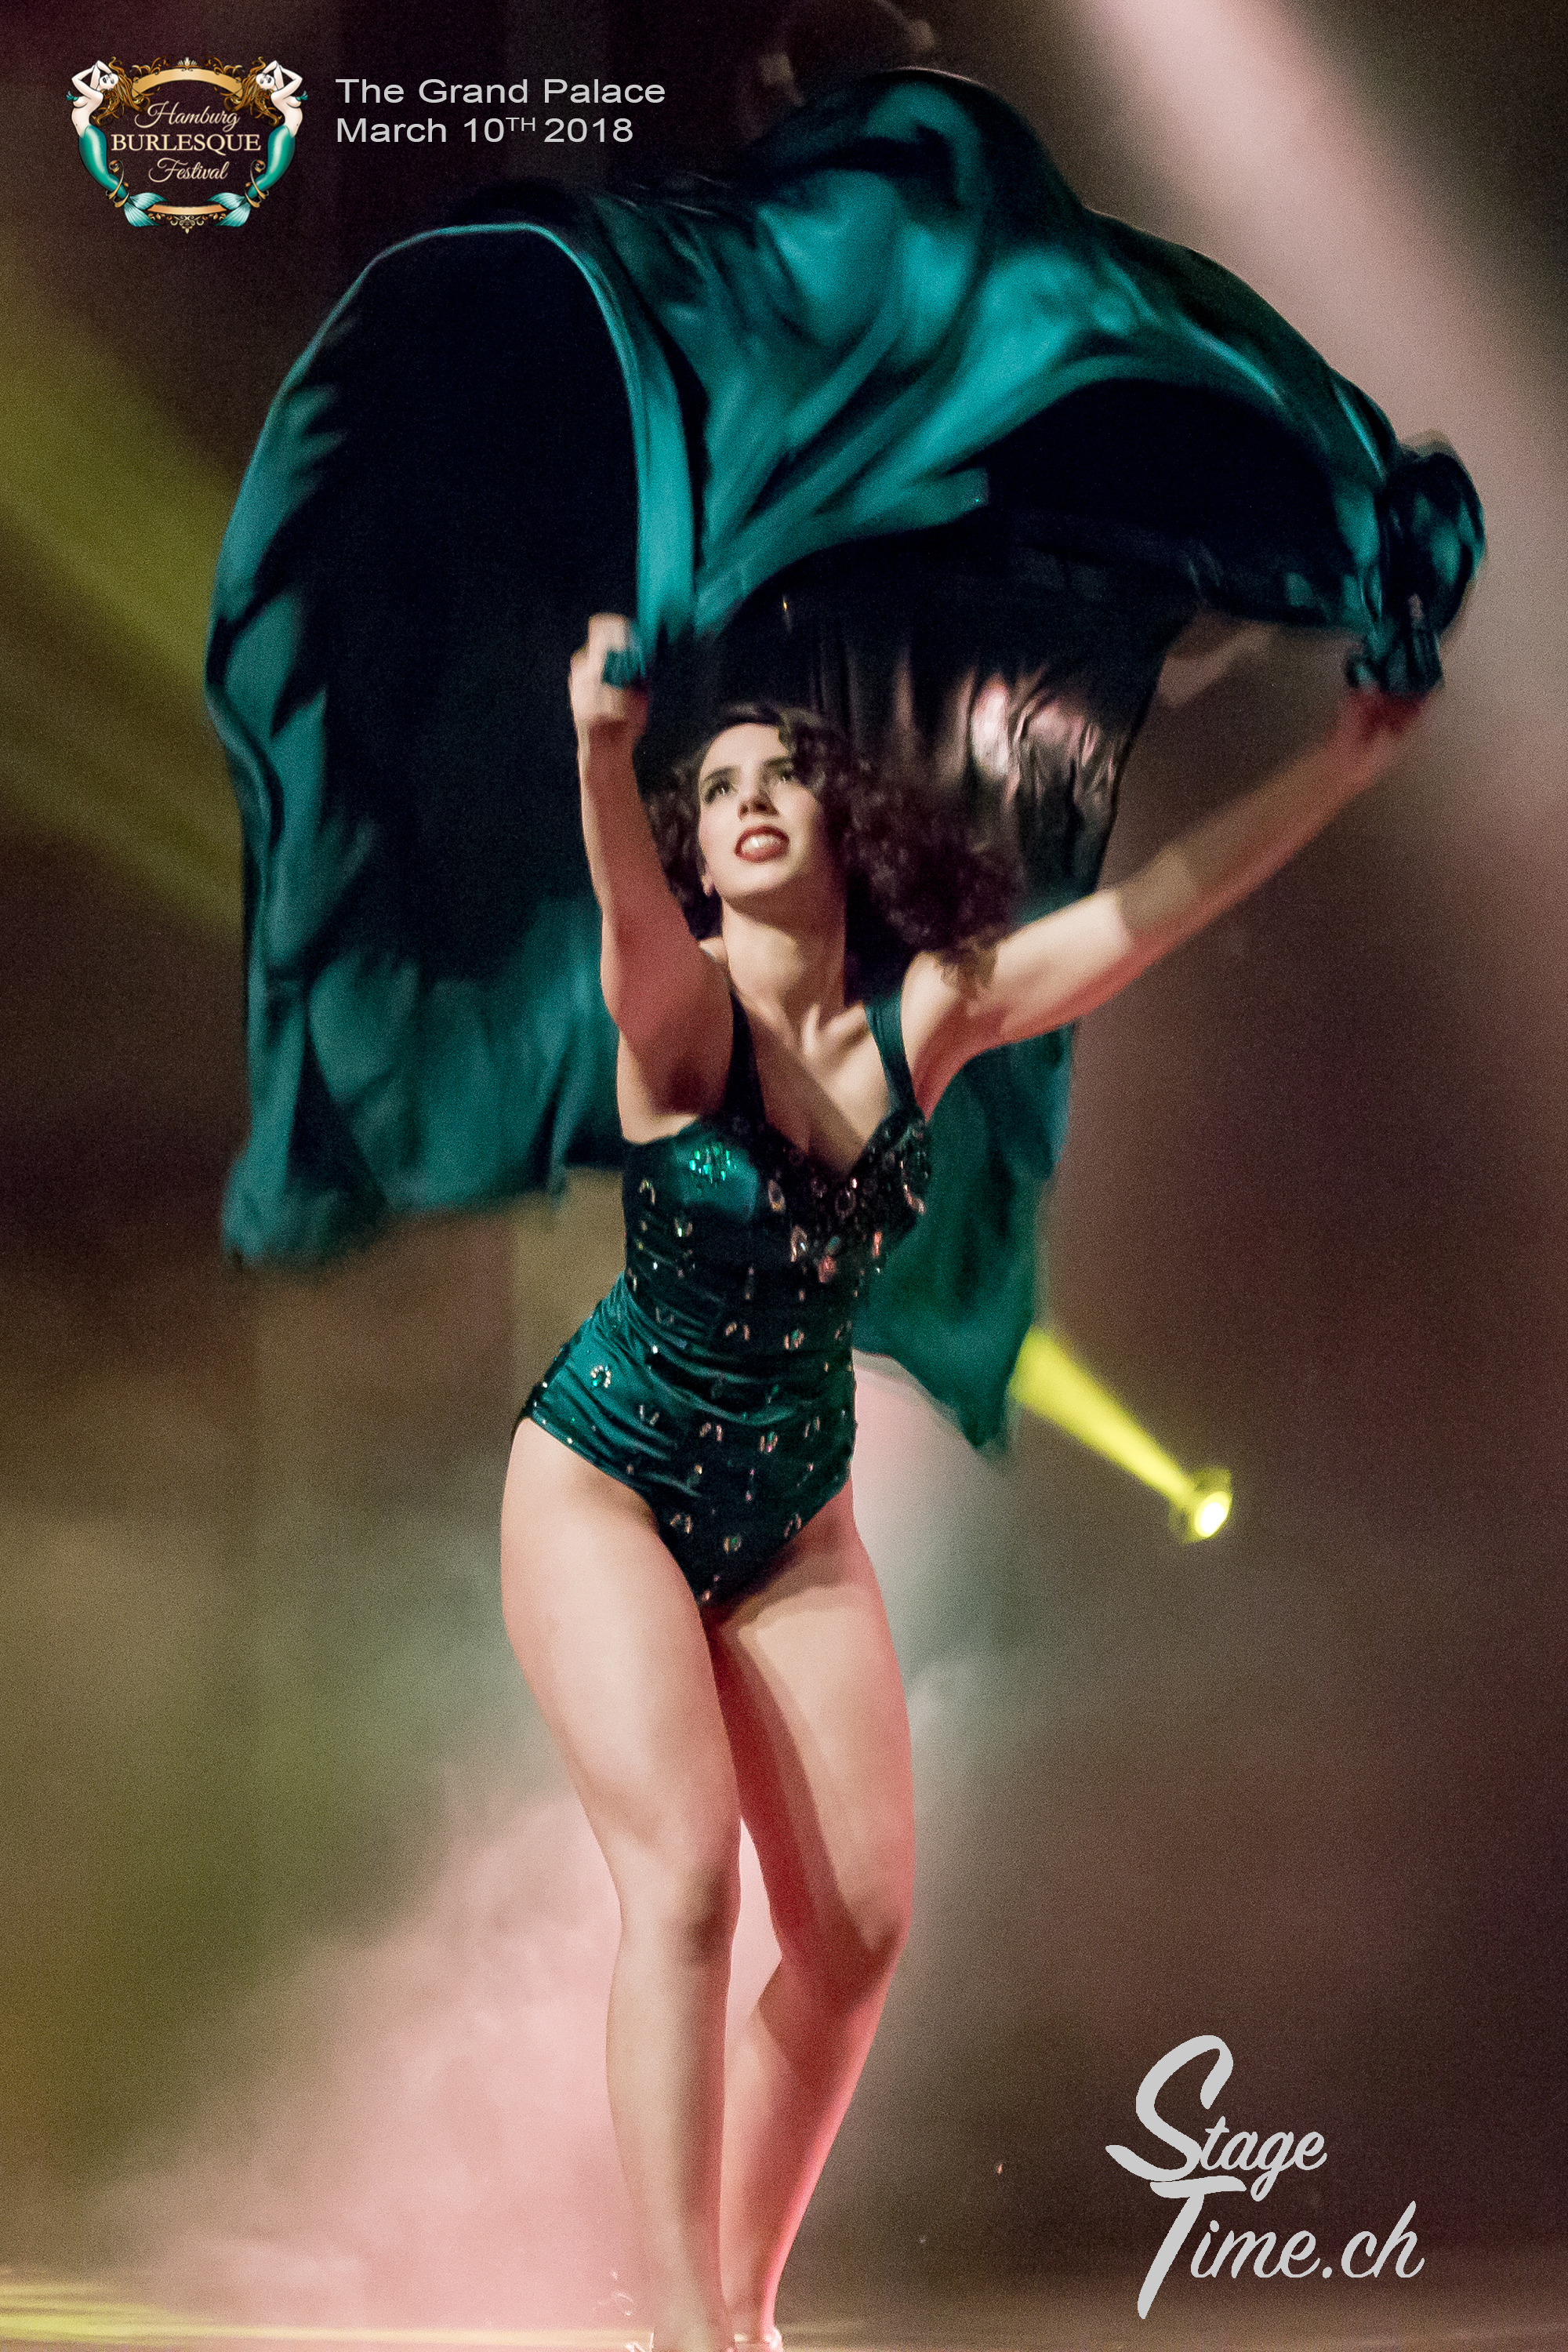 Hamburg_Burlesque_Festival_The_Grand_Palace__📷_Christoph_Gurtner_I_stagetime.ch-85